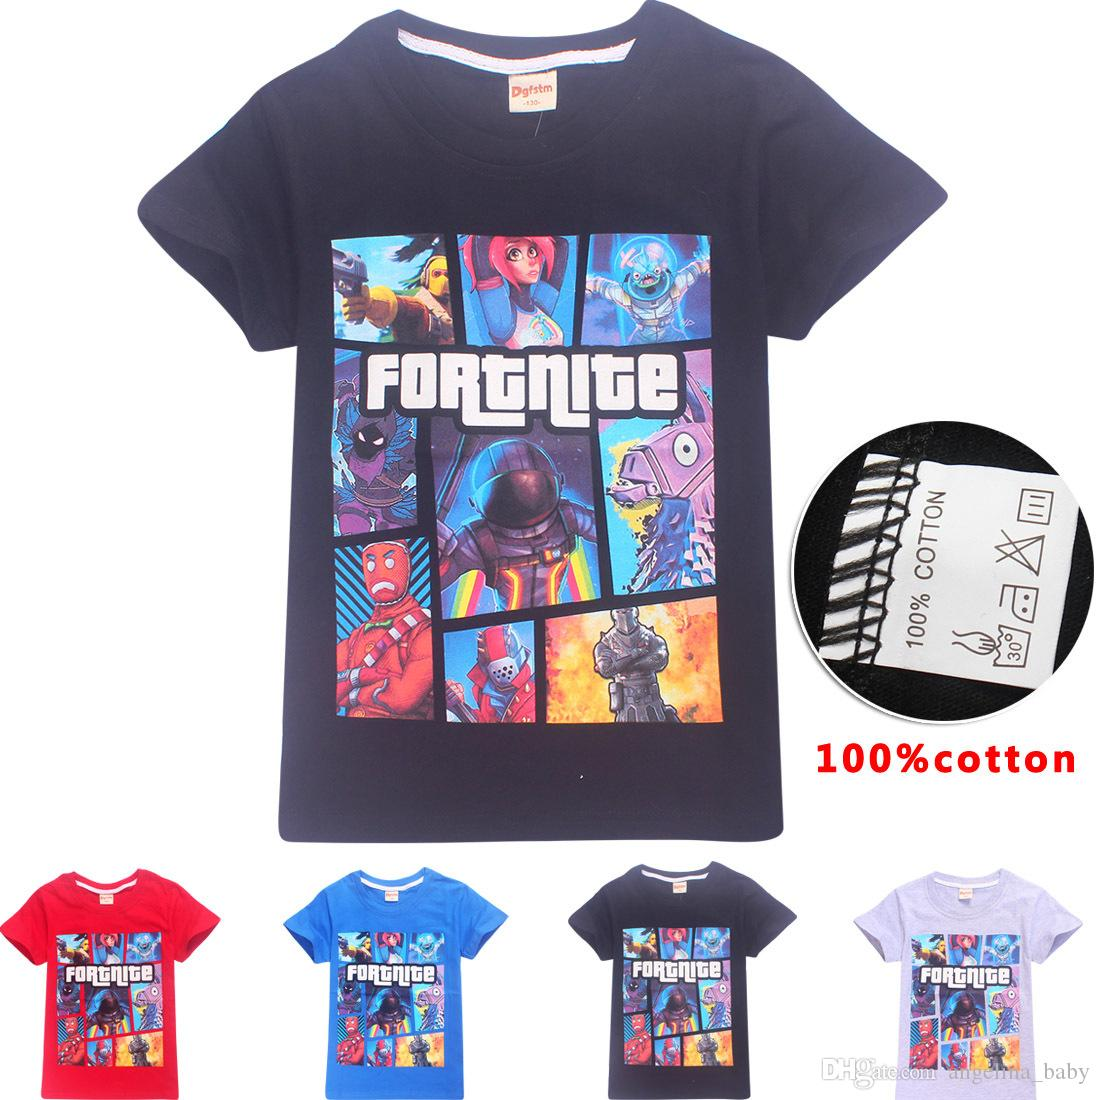 fe330405e 2019 Boys Girls Fortnite T Shirt 2018 New Children Game Cartoon Cotton  Short Sleeve T Shirt Baby Kids Clothing Z11 From Angelina_baby, $4.93 |  DHgate.Com